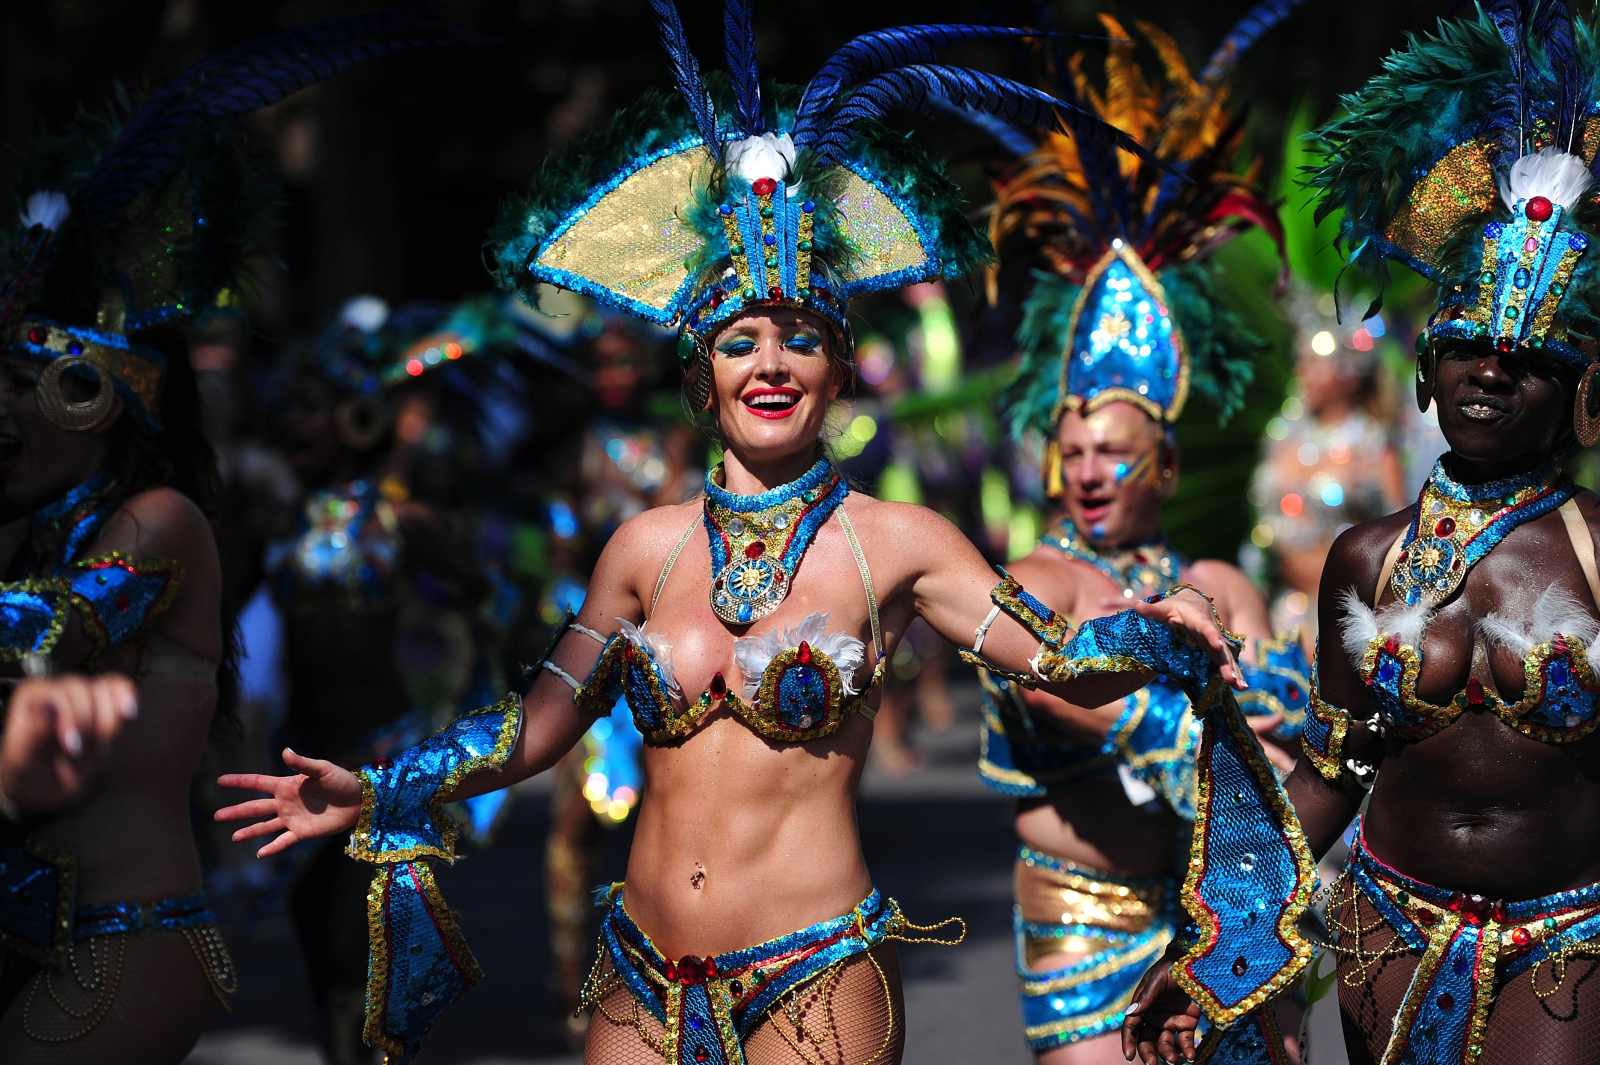 Notting Hill Carnival happens this weekend and police launched raid on homes ahead of the fun